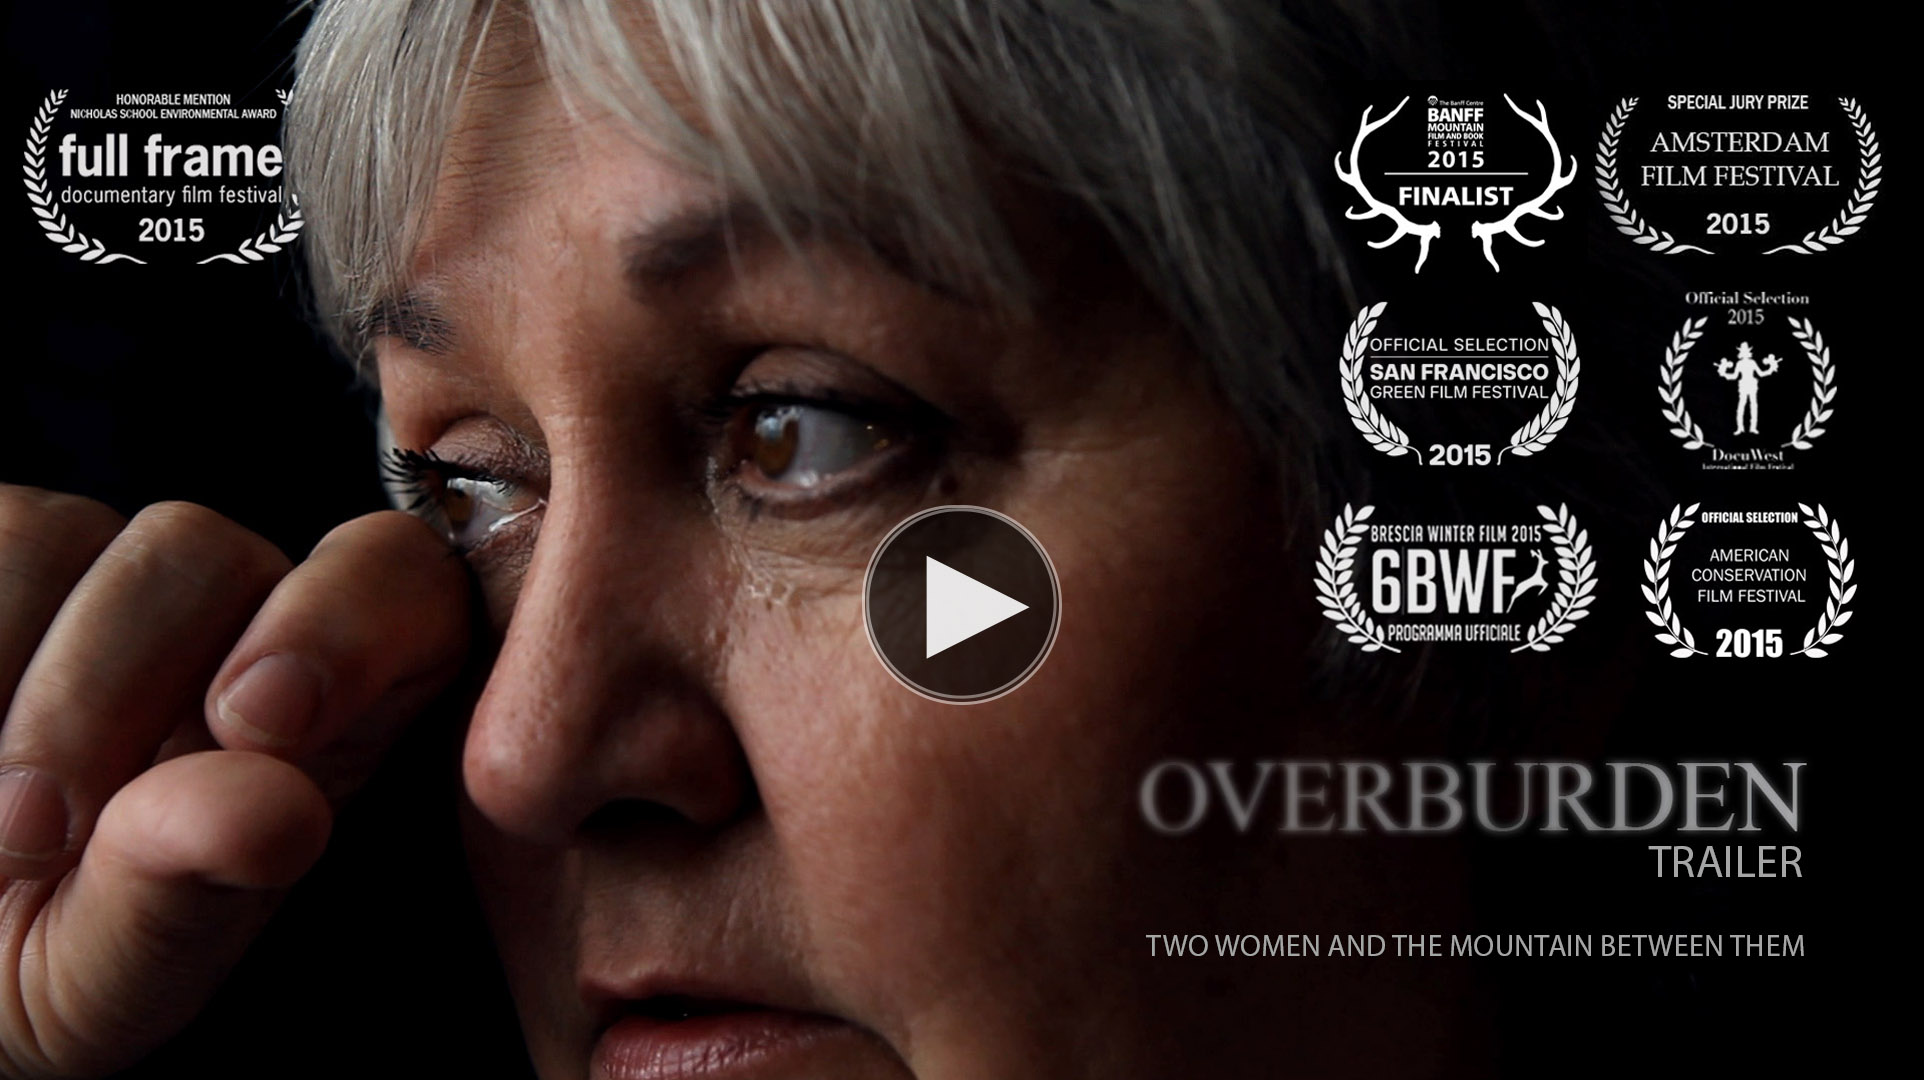 Overburden - A Milesfrommaybe production, produced and edited by StoryMineMedia